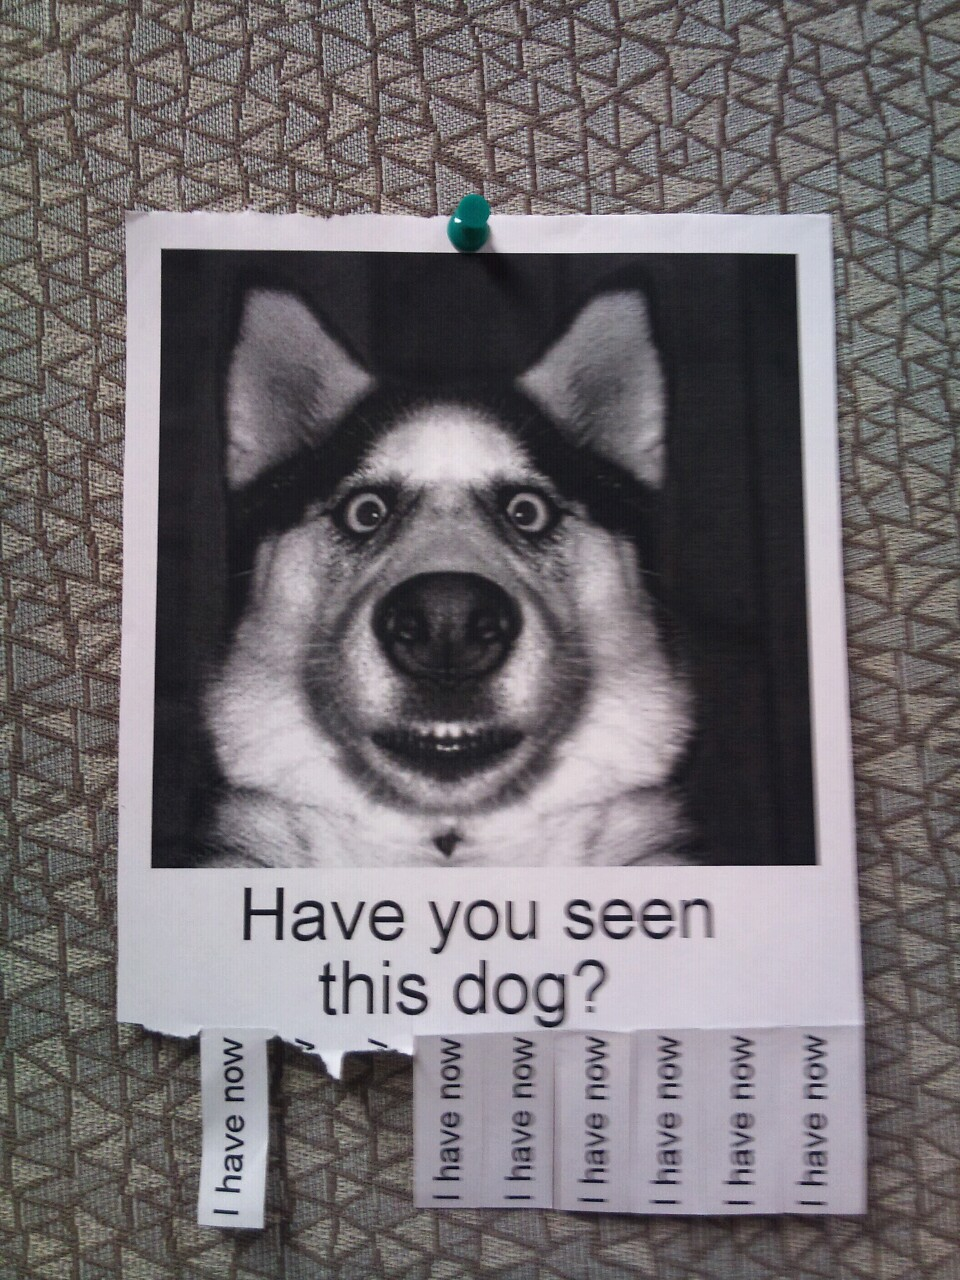 This image is humourous, not an actual missing dog.